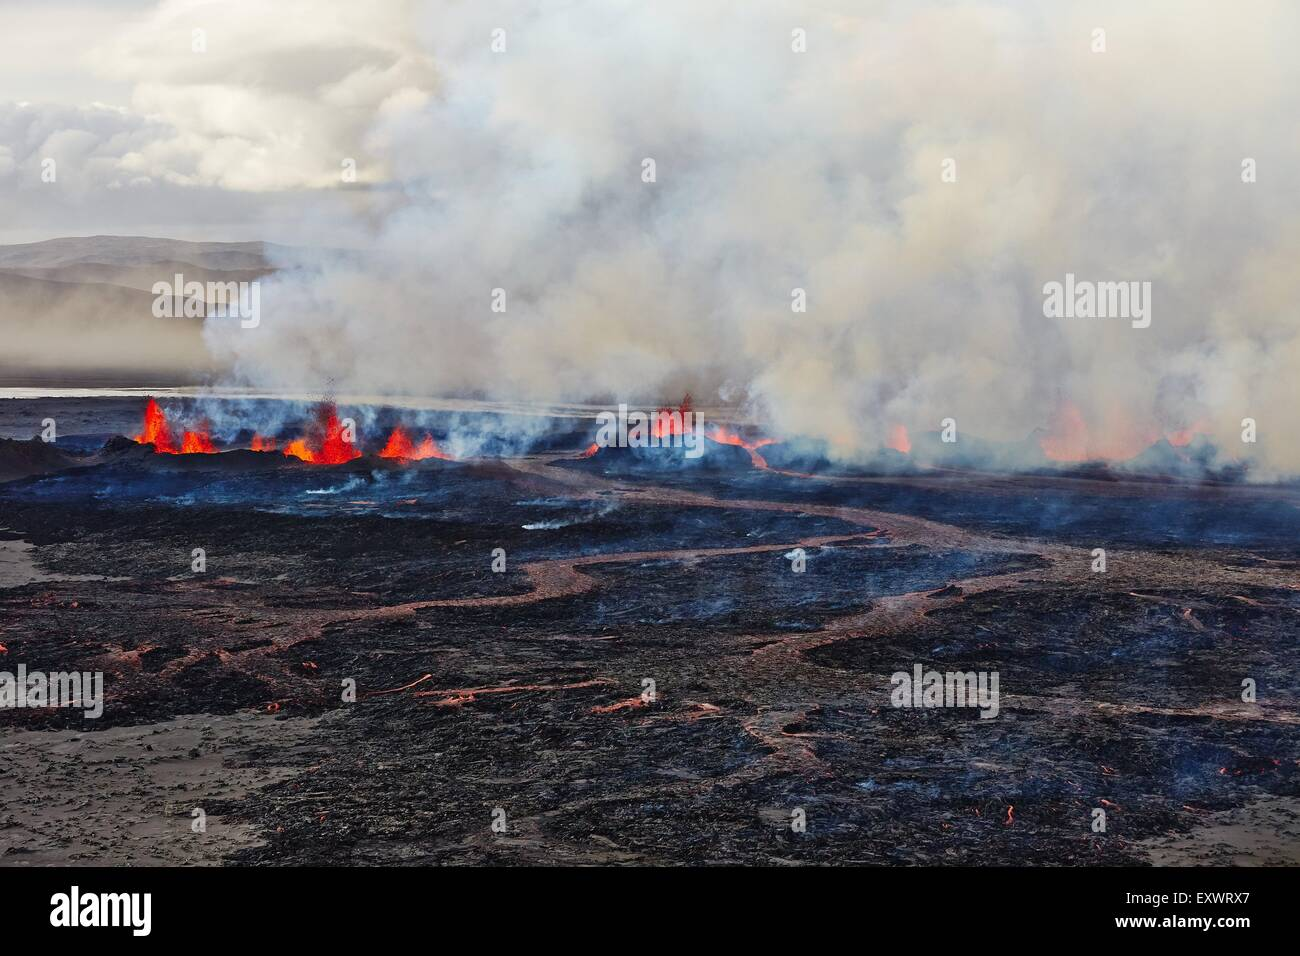 Volcano Bardarbunga, view on eruption at lava field Holuhraun at Sept 2nd 2014, Iceland Stock Photo